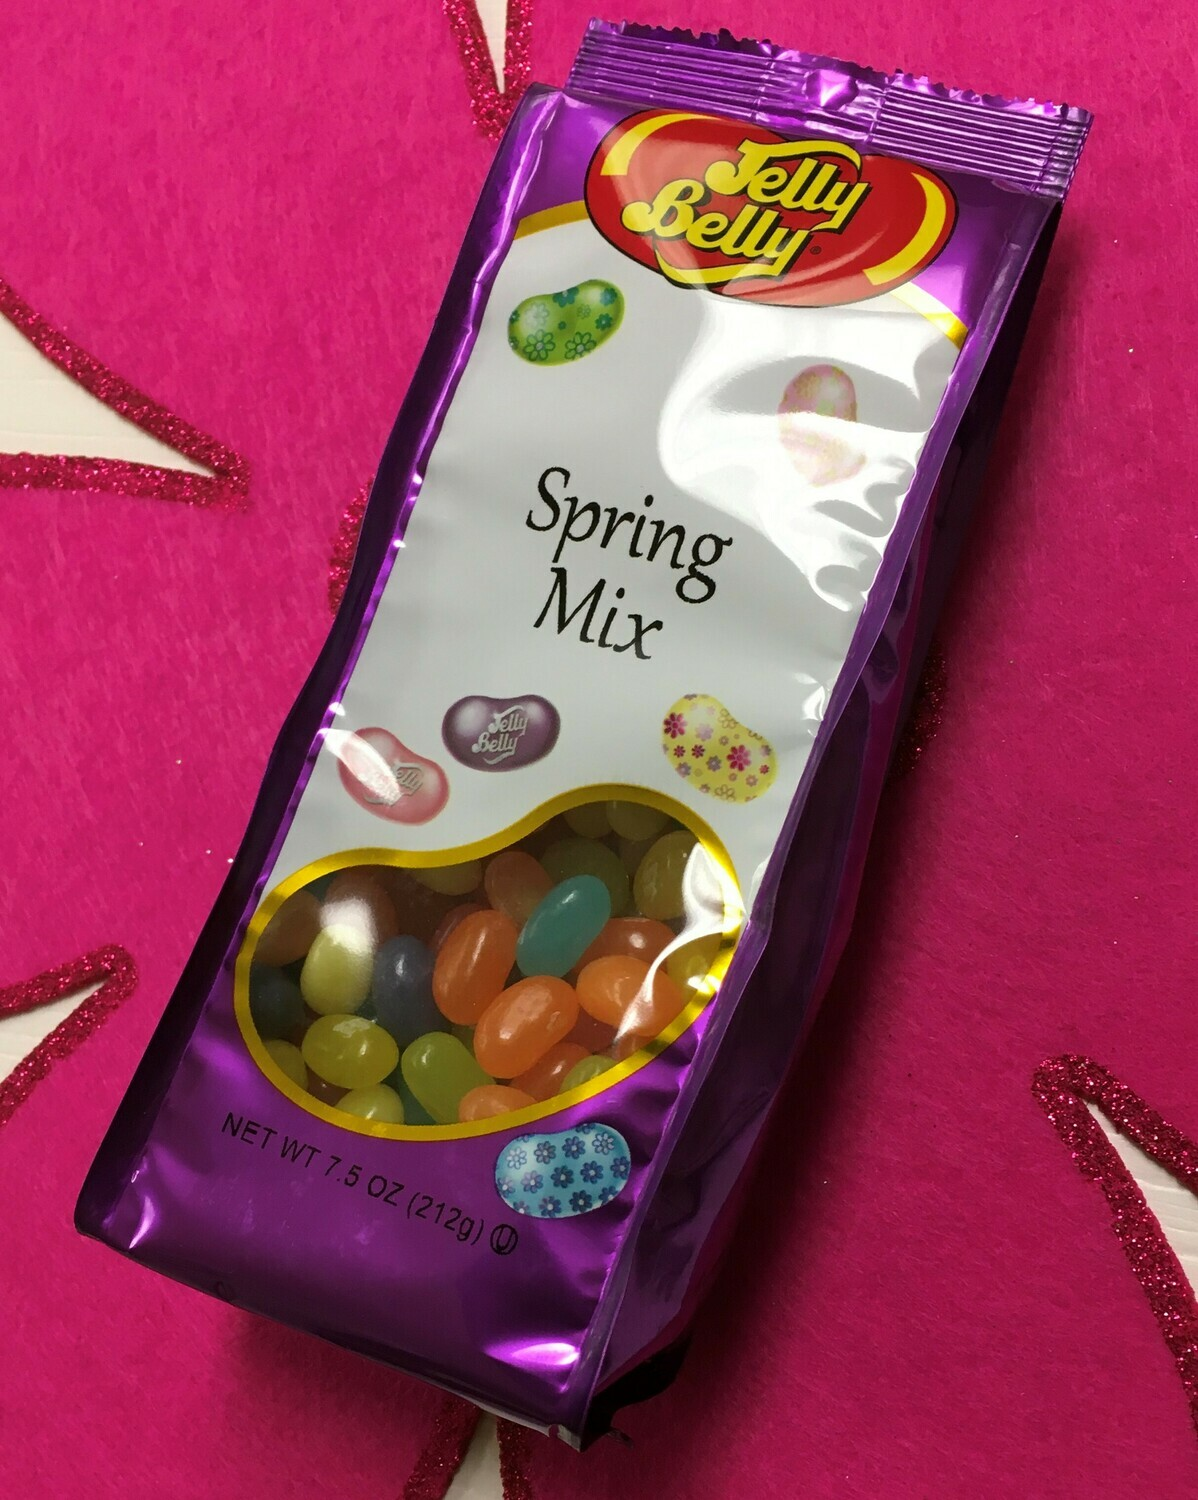 Jelly Belly Jelly Beans.  7.5 oz. bag.